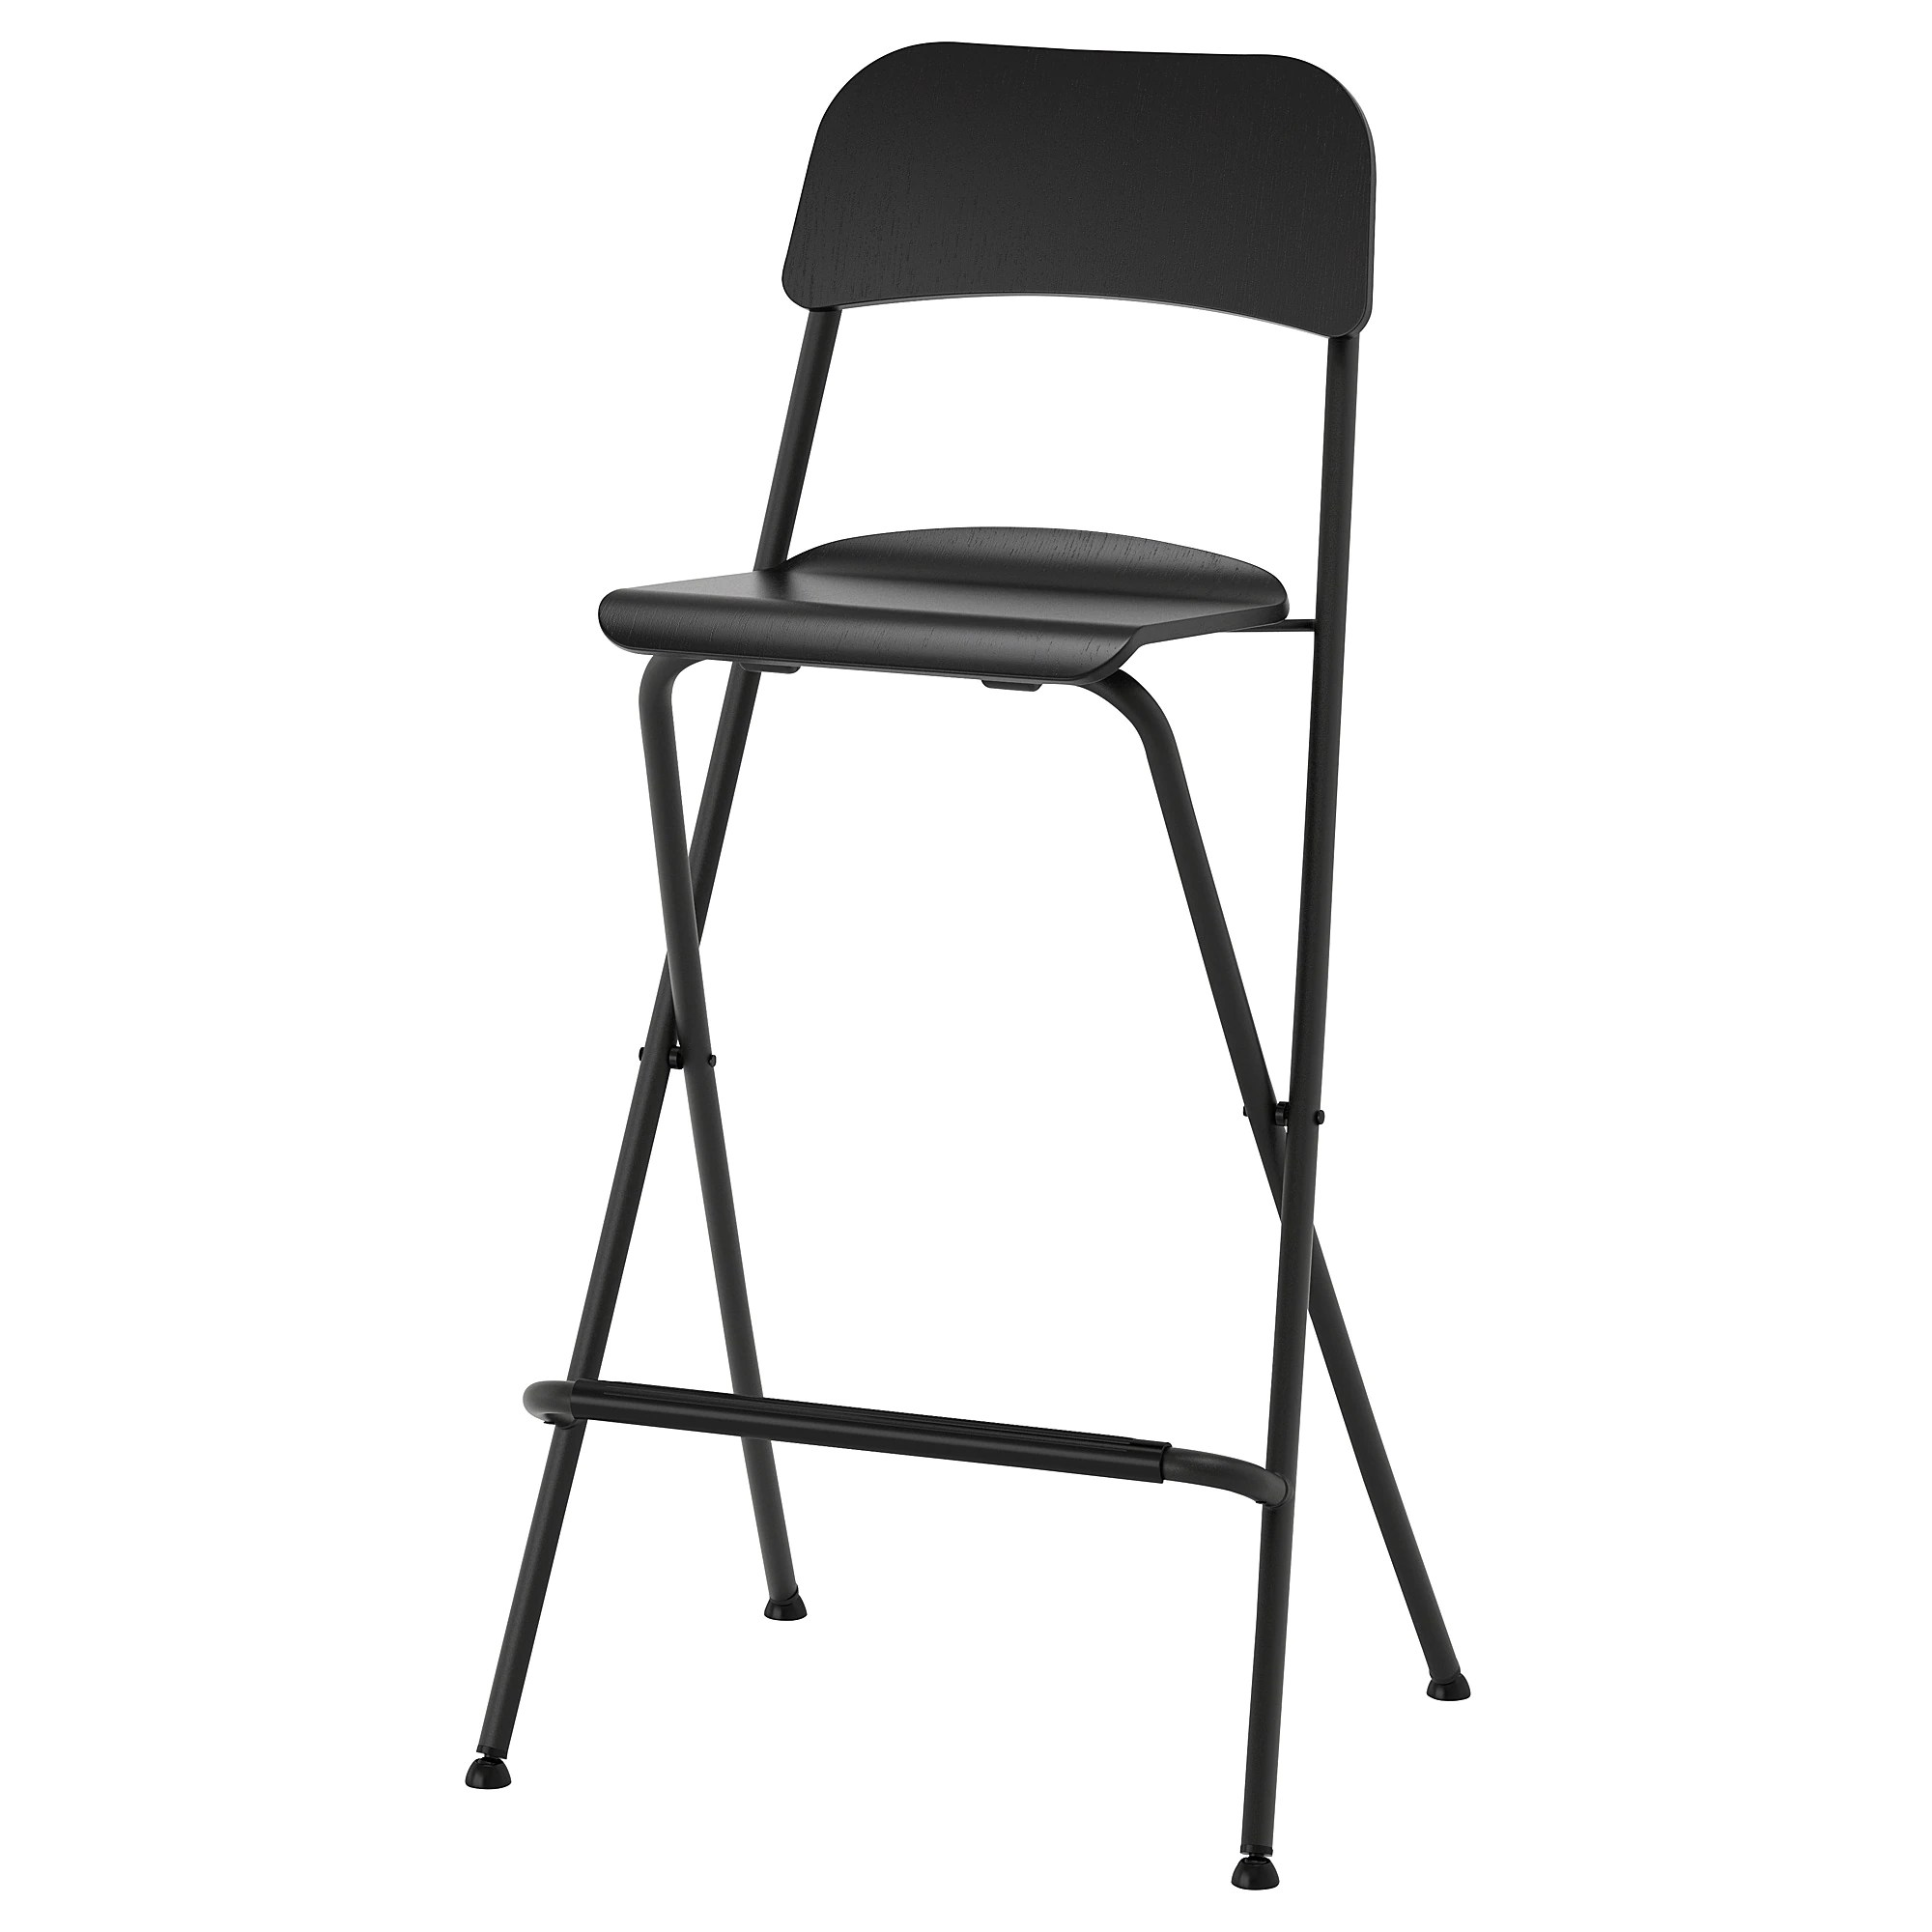 Bar Stool Chairs Franklin Bar Stool With Backrest Foldable Black Black